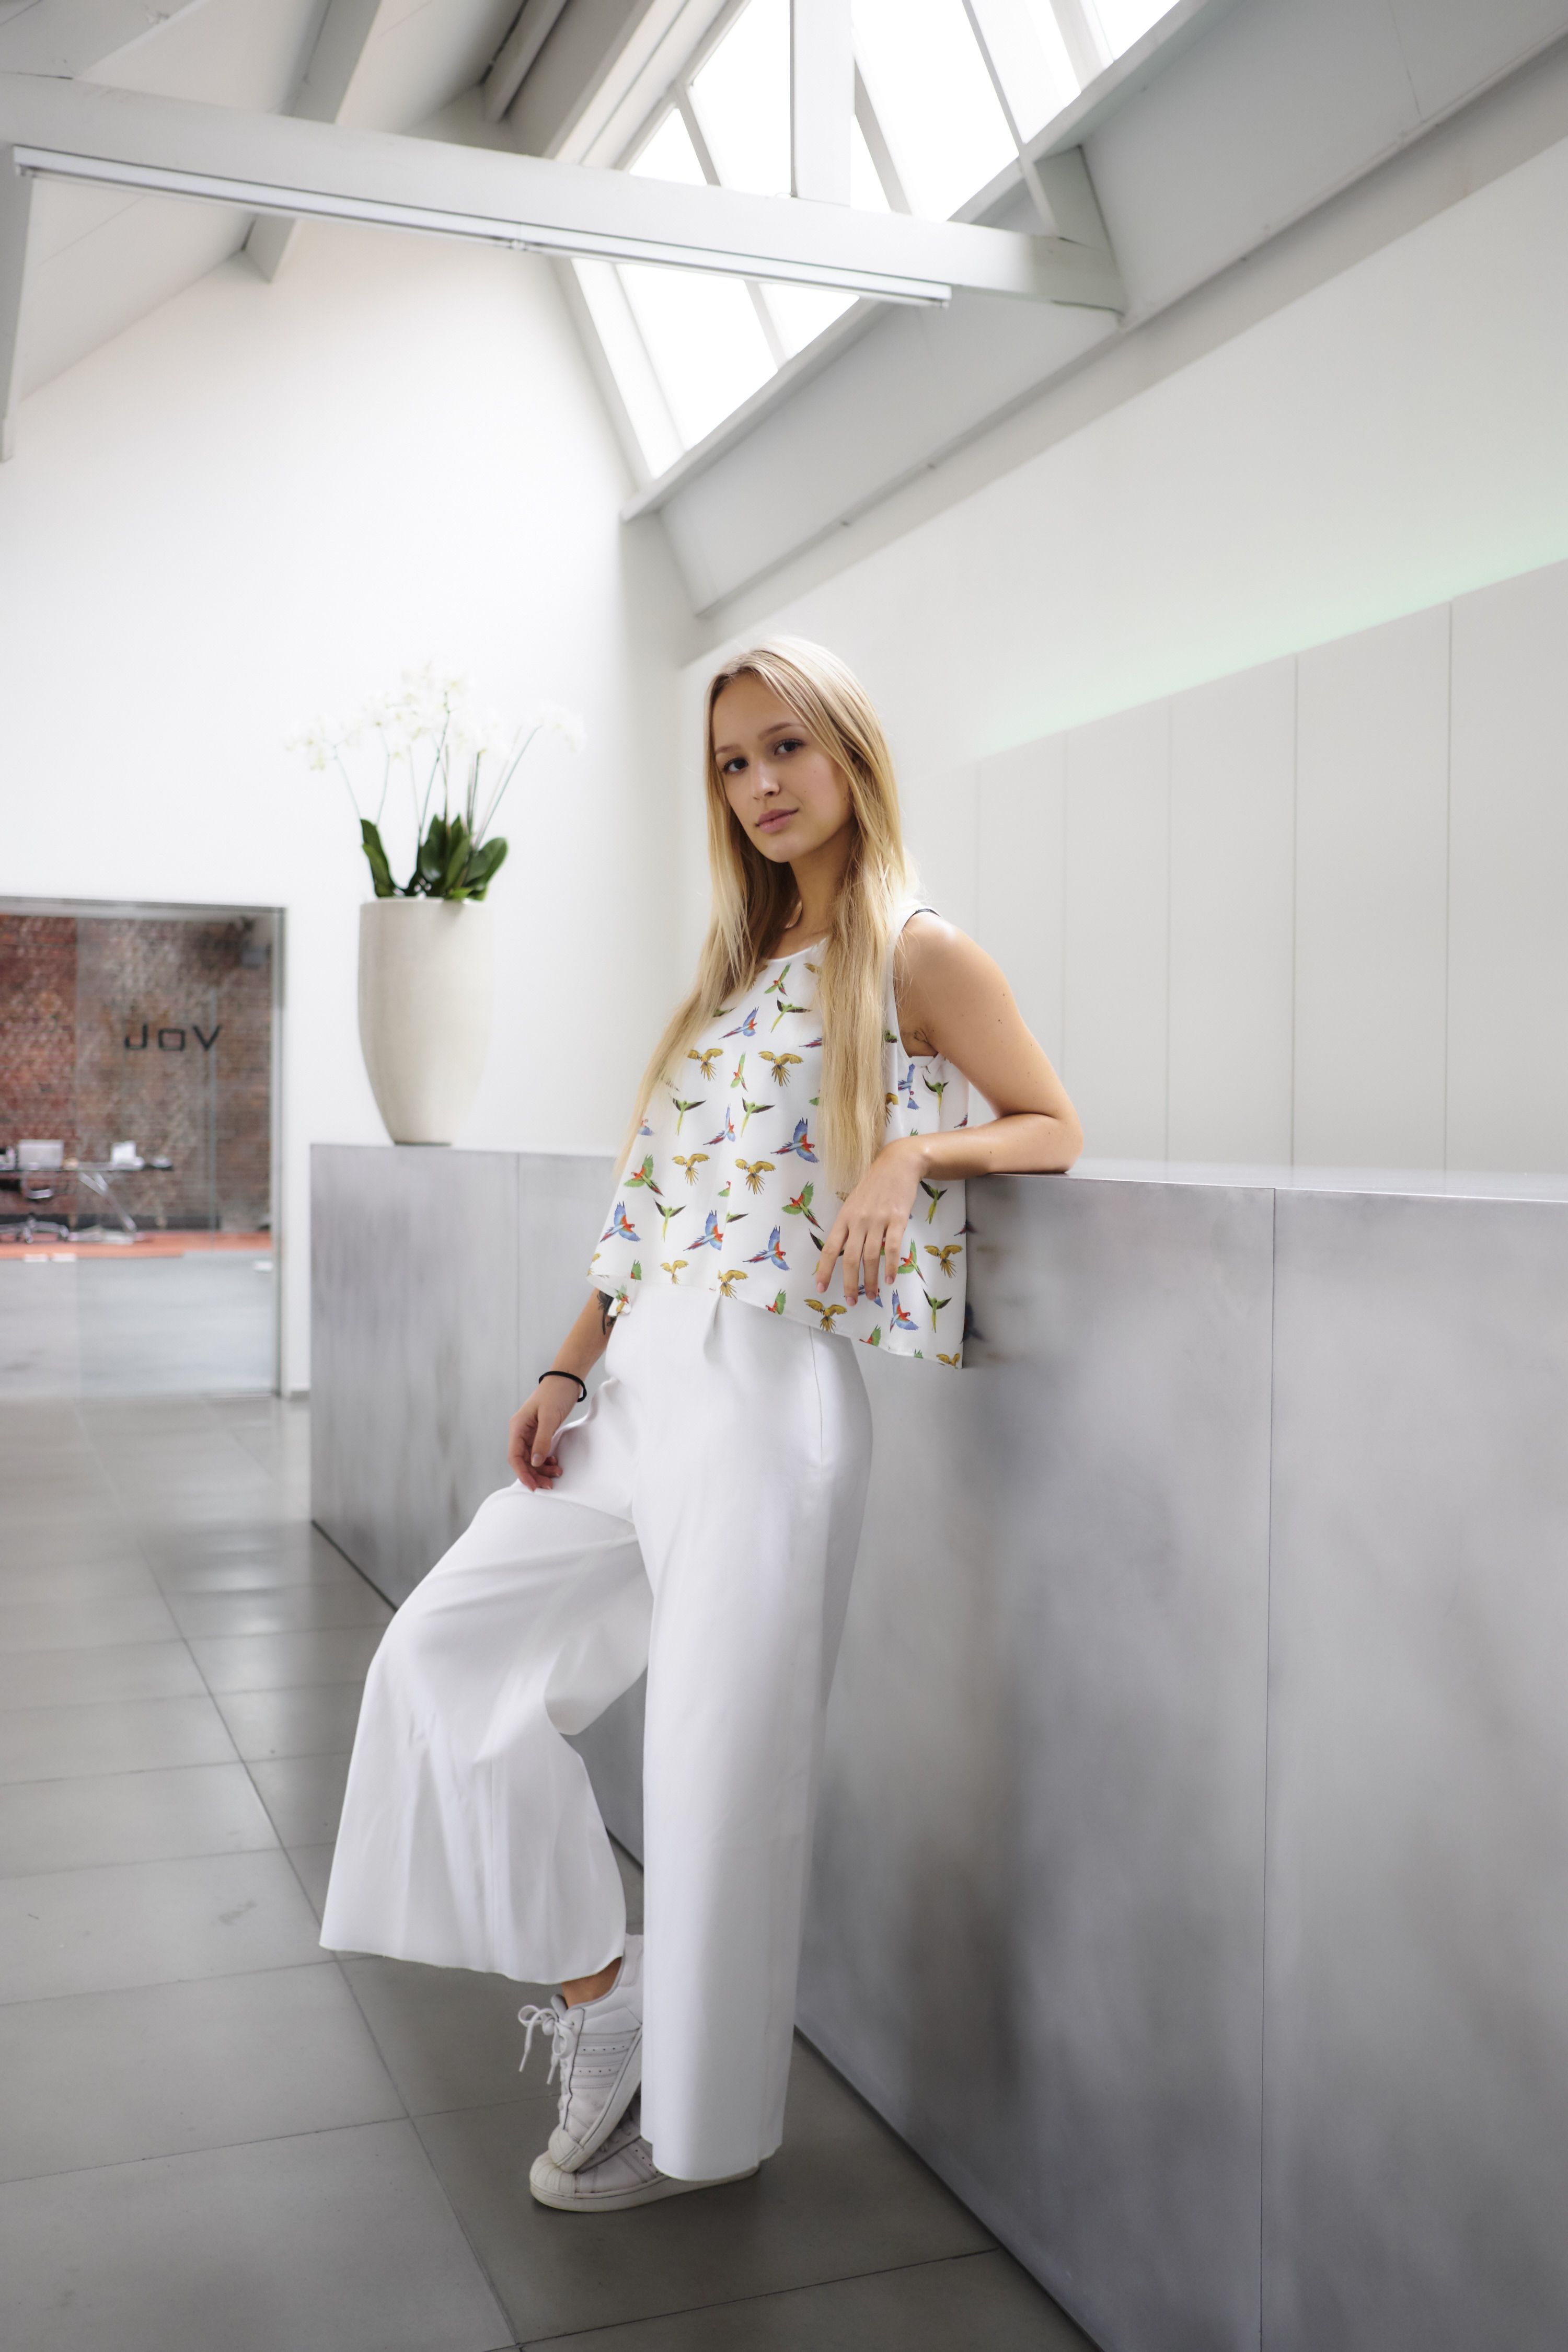 #nxi #fashion #trendy #inspiration #bohochic #skirt #top #croppedtop #chic #party #feest #dress #kleed #inspiratie #design #trend #rok #sneakers #going out #outfit #summer #summeroutfit